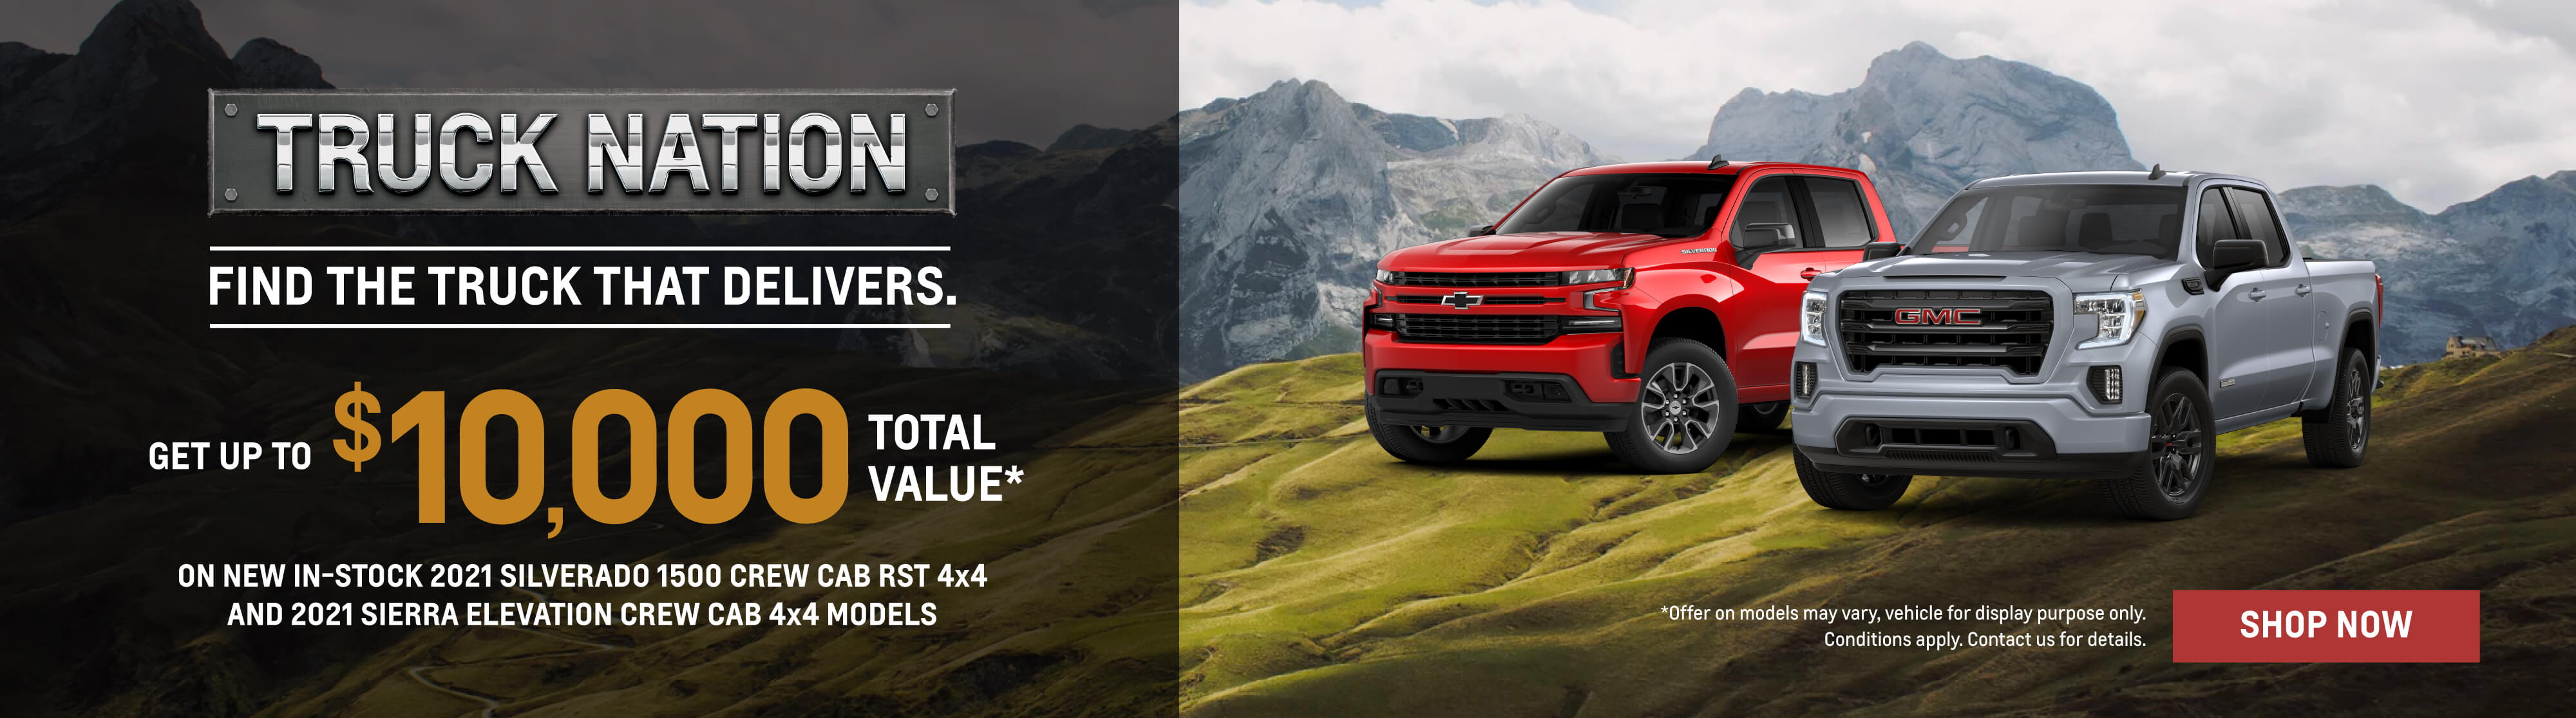 2021 Chevrolet Silverado and 2021 GMC Sierra Offers in Etobicoke